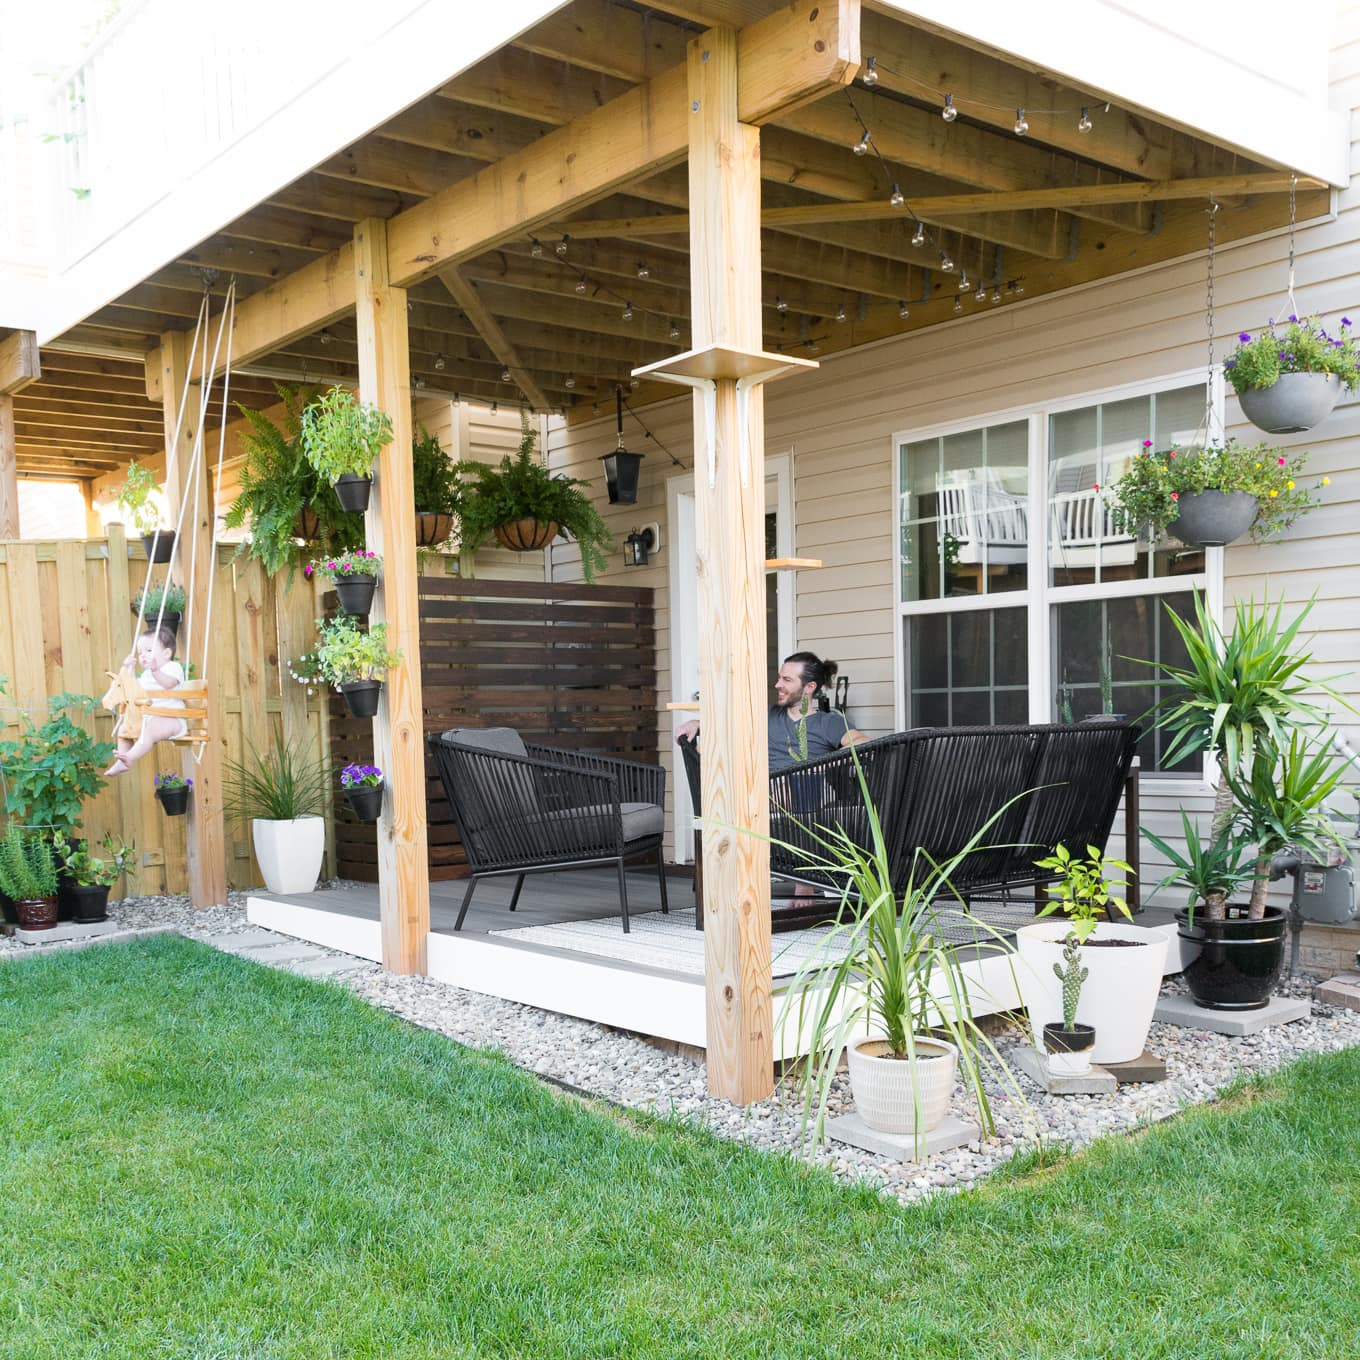 Tiny Backyard Ideas An Update On My Tiny Backyard Garden pertaining to Backyard Design Ideas For Small Yards